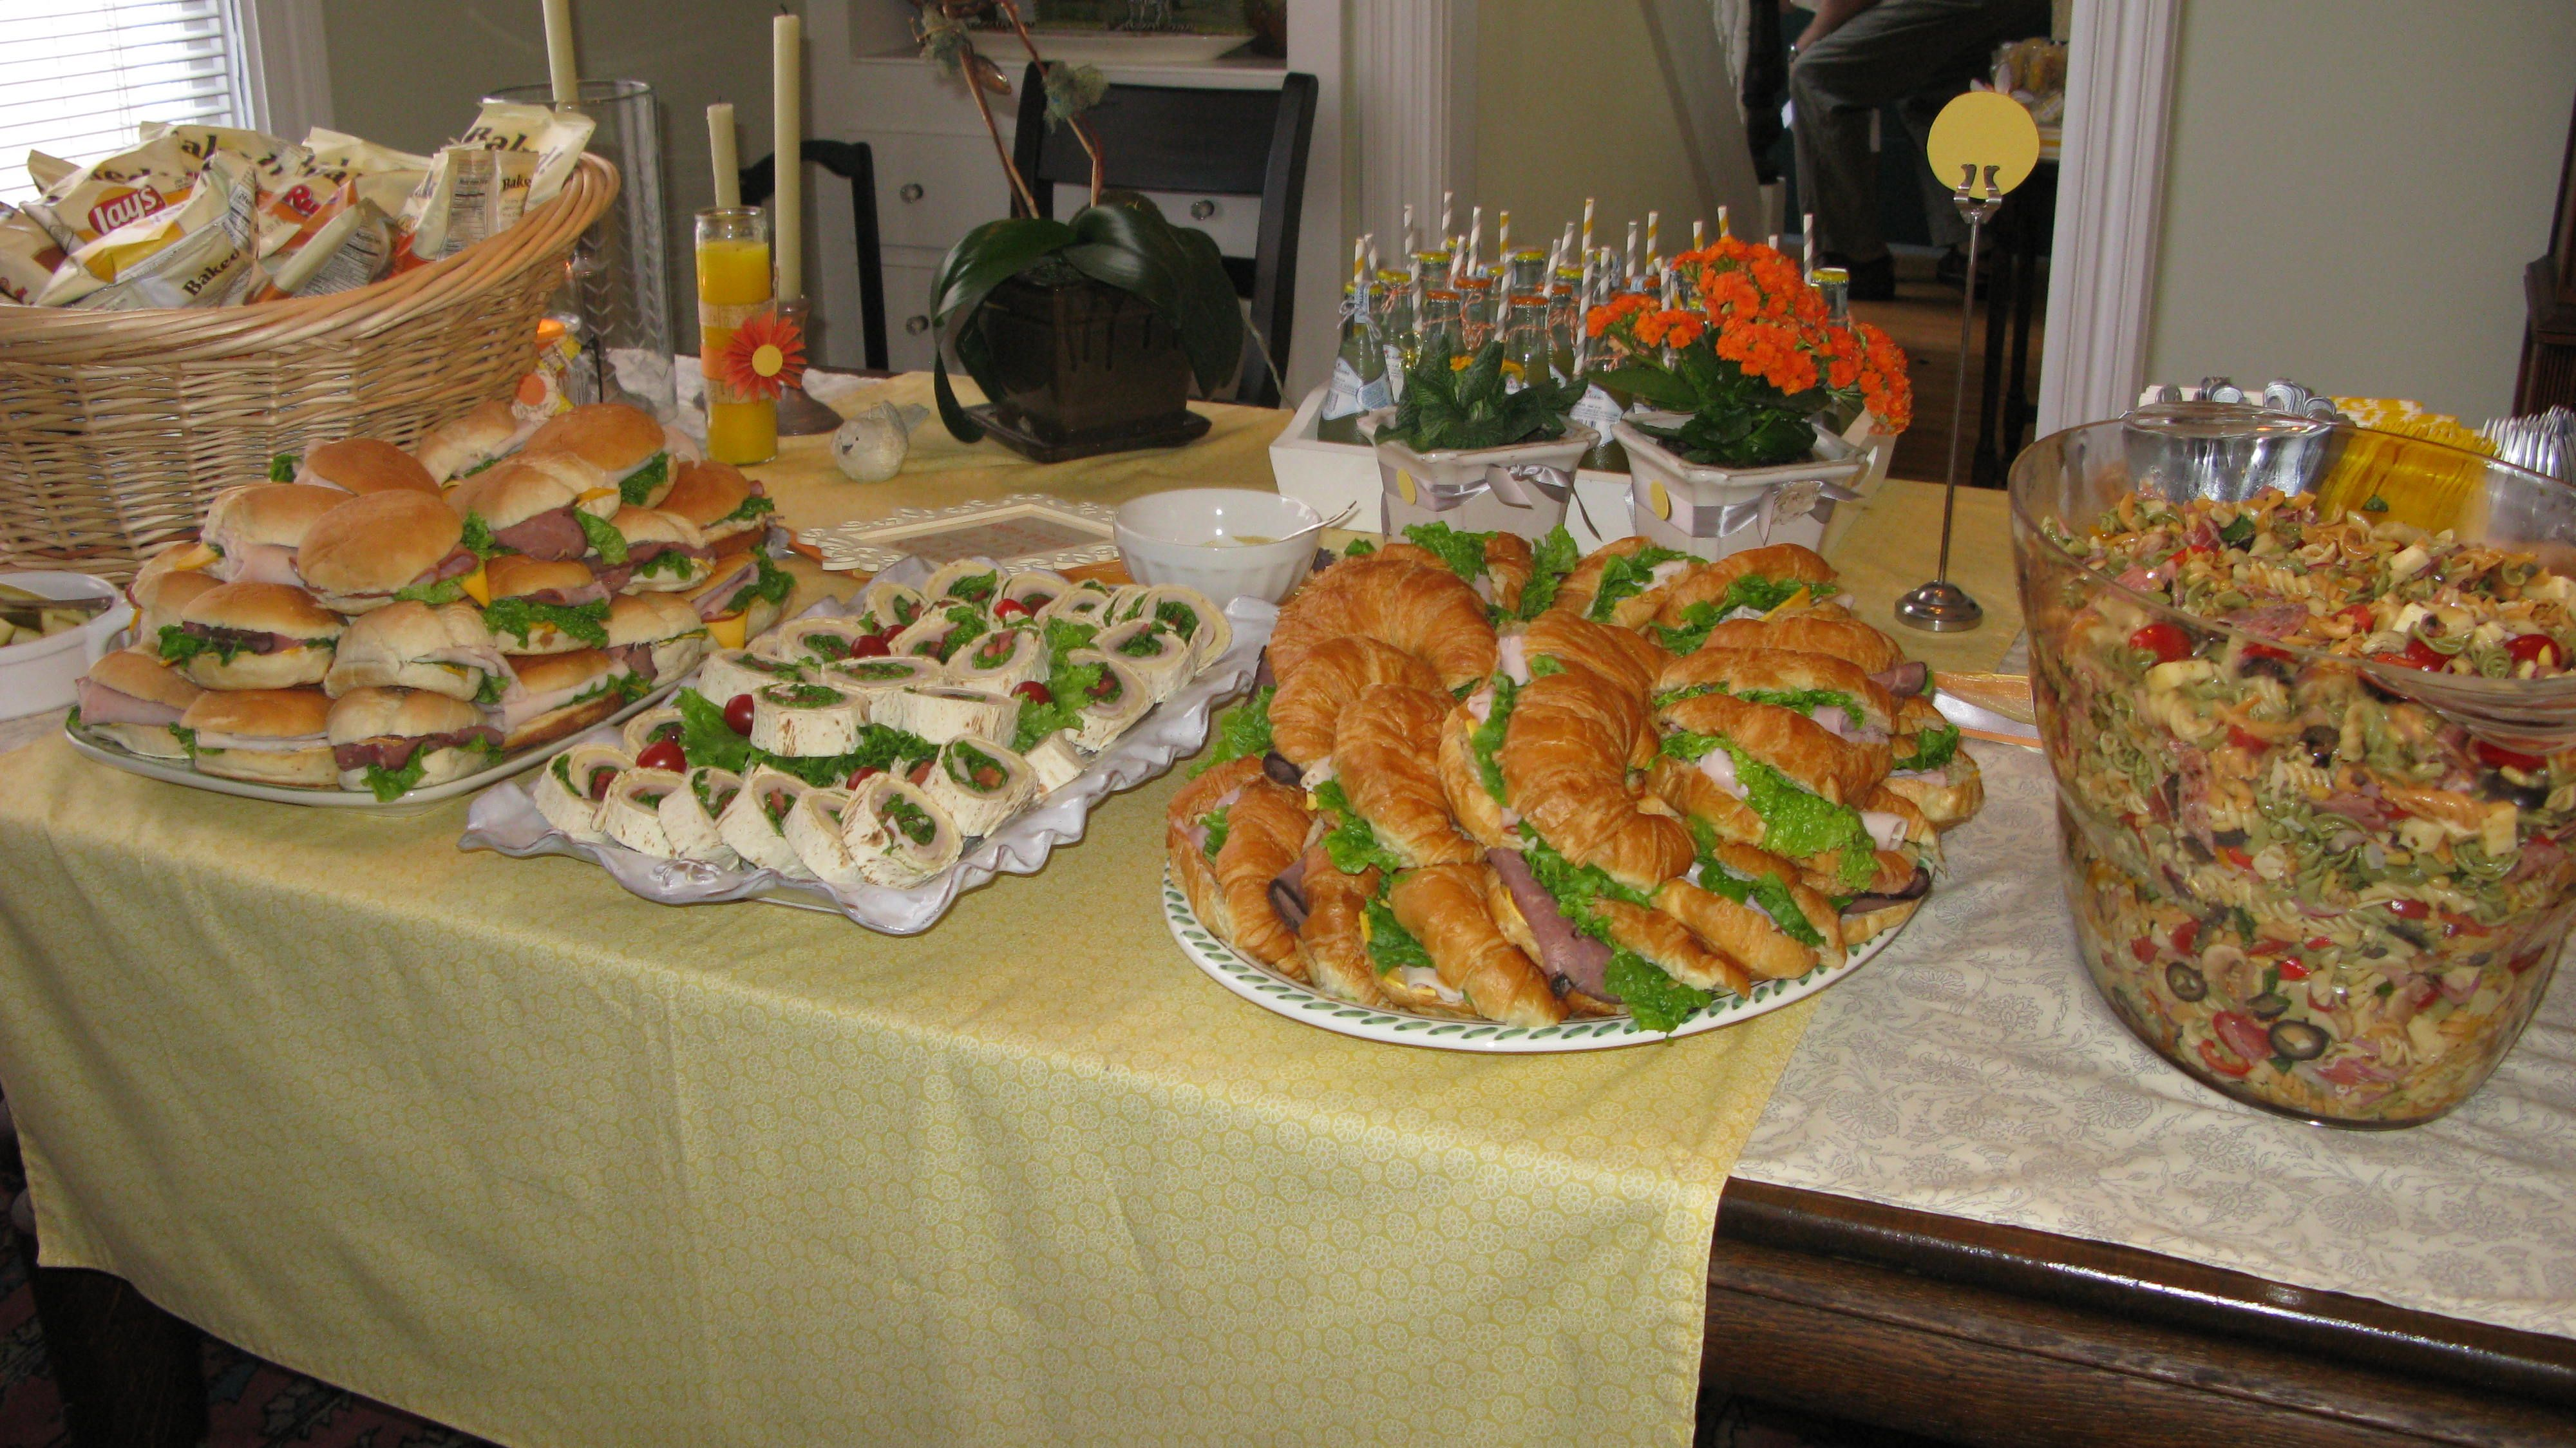 Baby Shower Luncheon: Homemade Pasta And Sandwich Platters From Albertsons